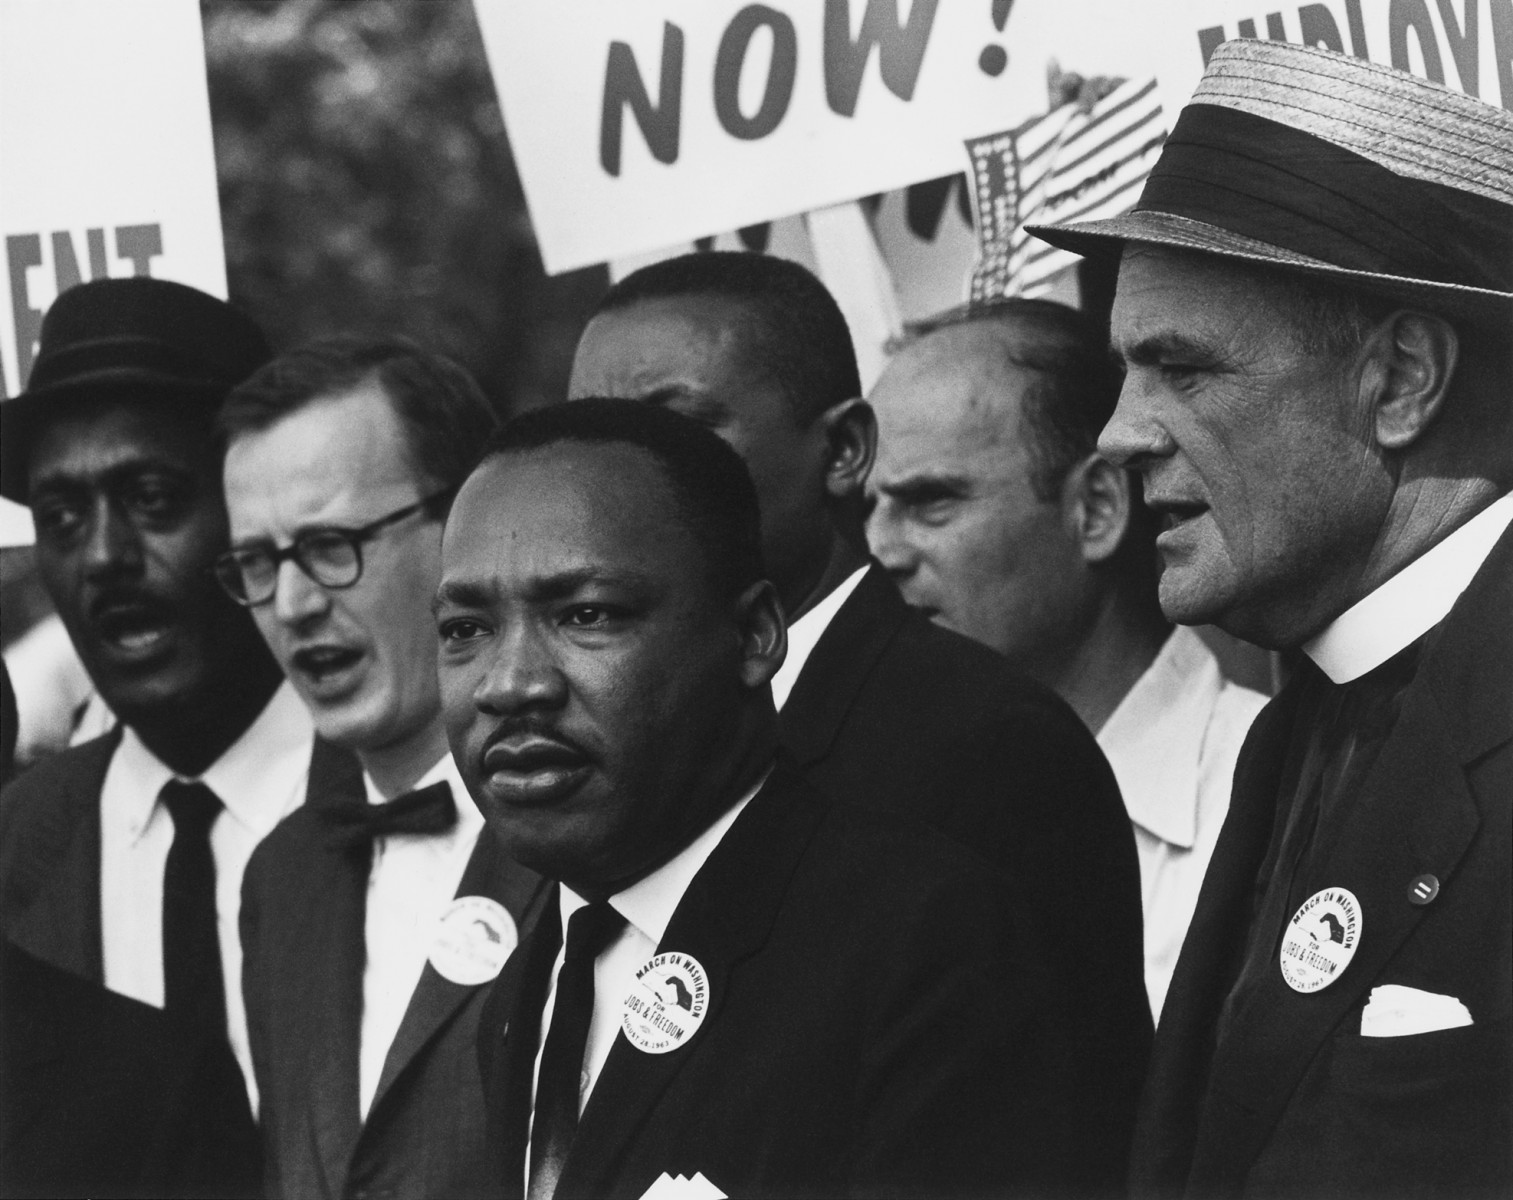 Martin Luther King Jr. during the 1963 March on Washington for Jobs and Freedom